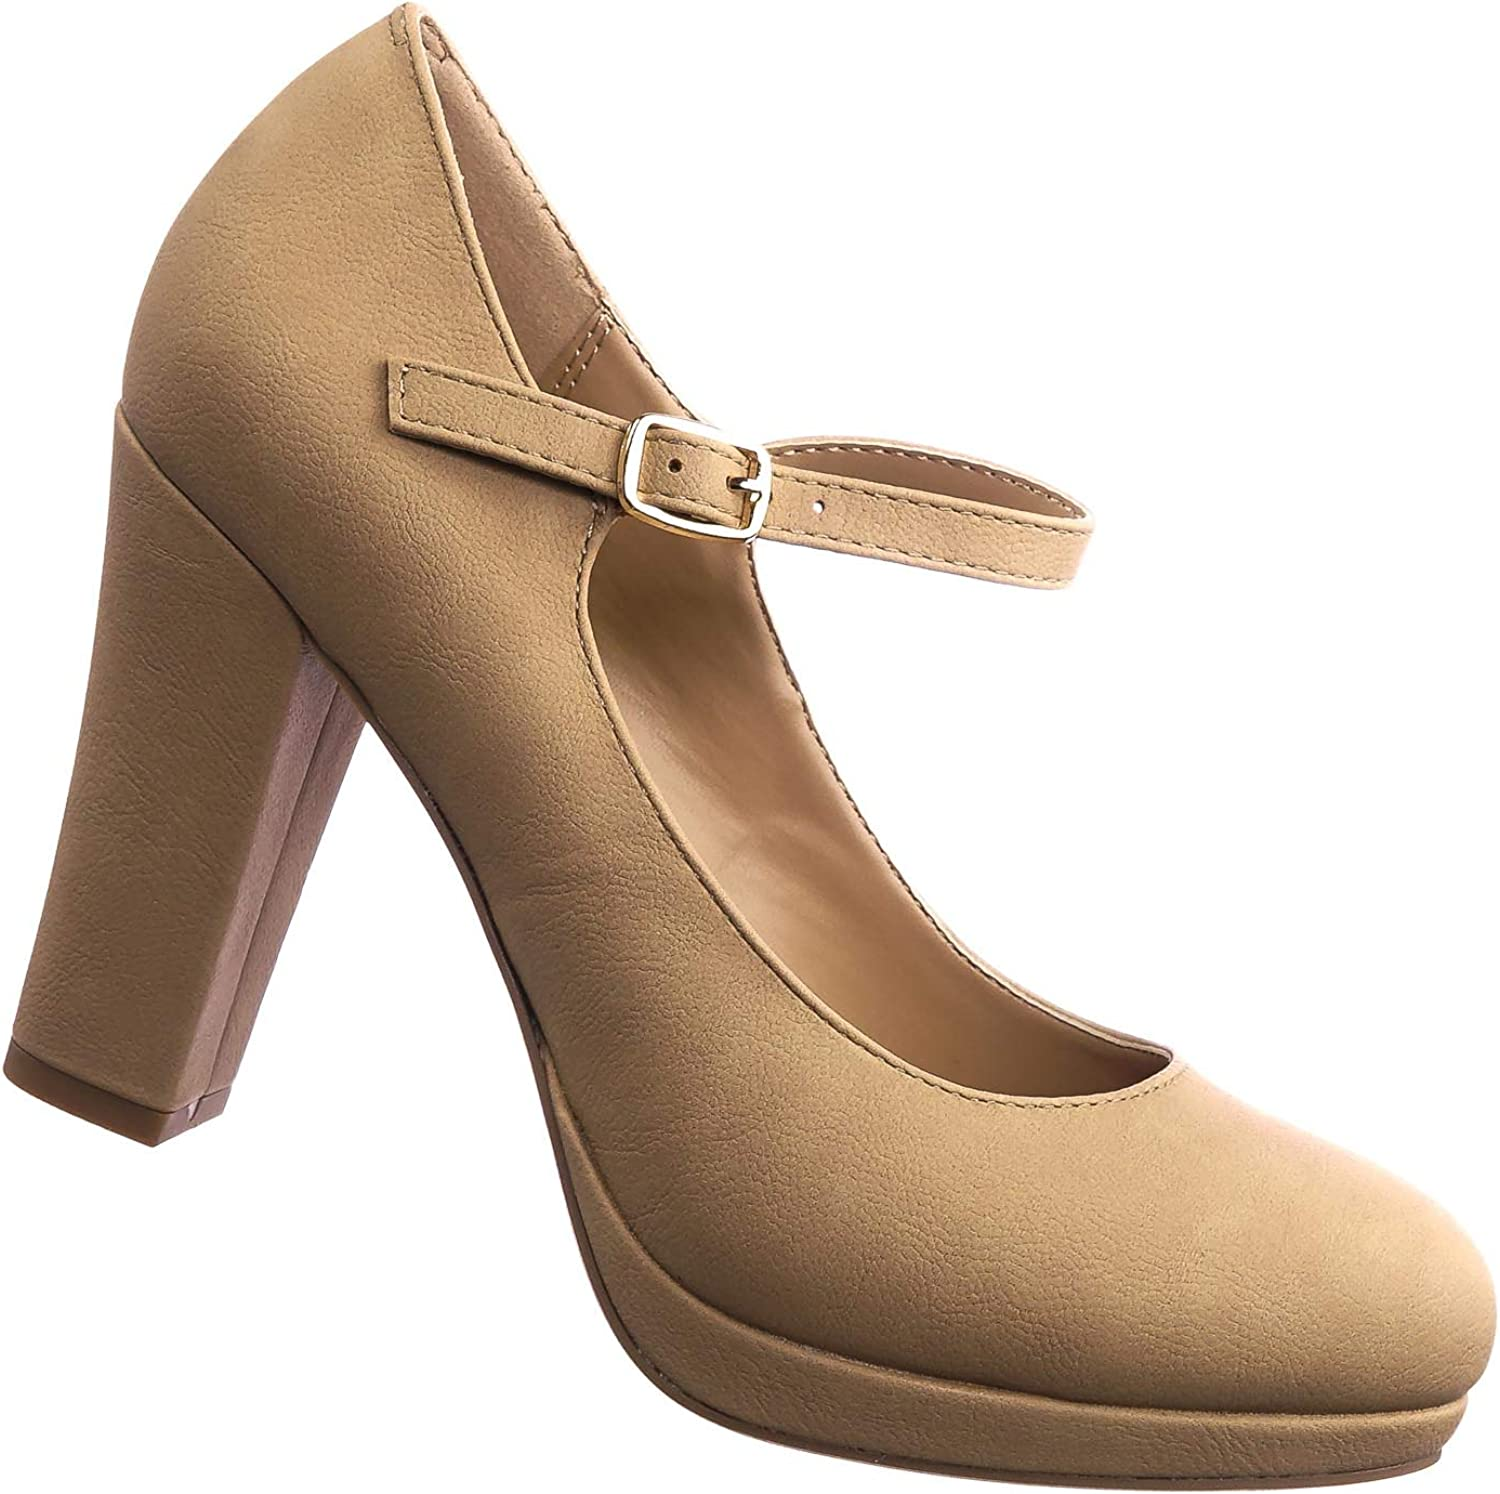 City Classified Comfort Comfy Foam Padded Vintage Chunky Block High Heel Mary Jane Pump Natural Beige